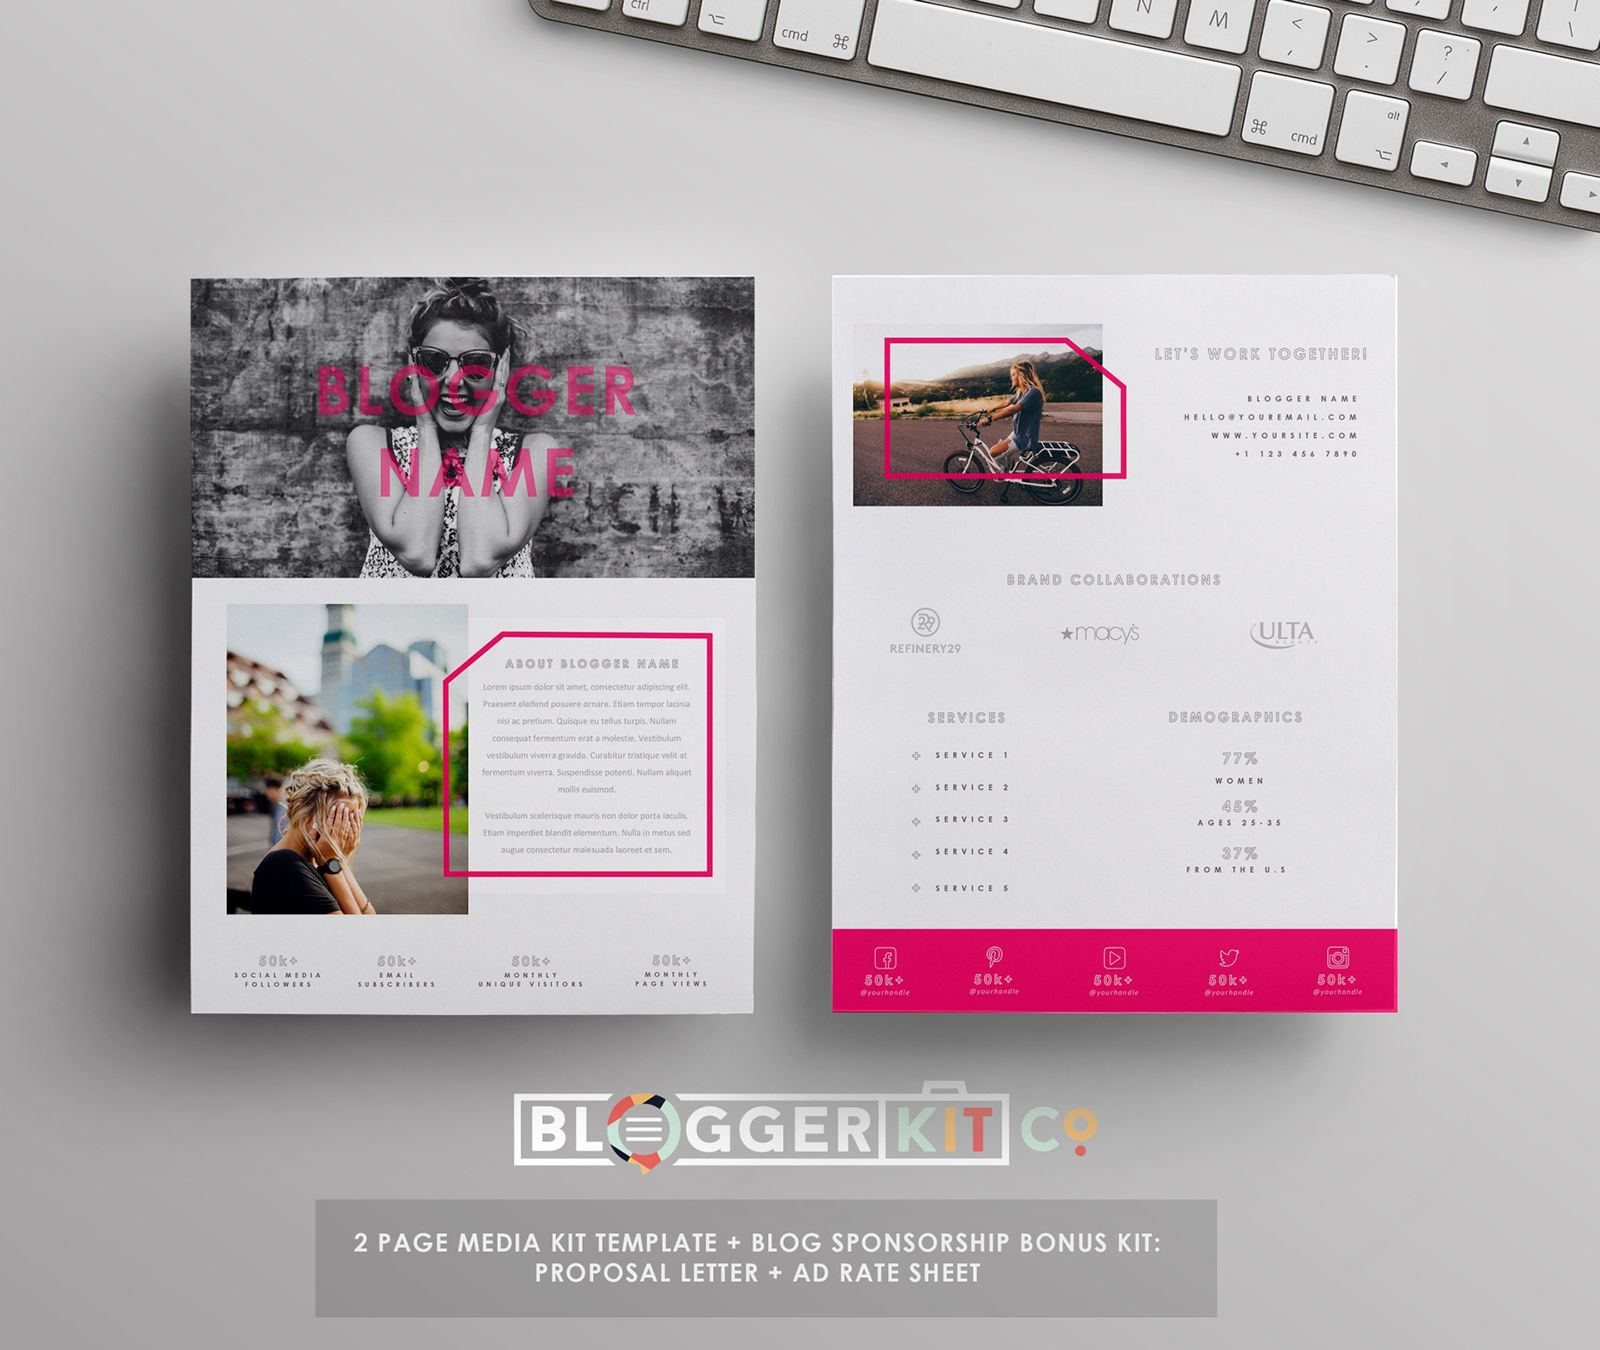 Sponsorship Resume Template Blog Media Kit And Sponsorship Set  Ad Rate Sheet Ms Word  Media .